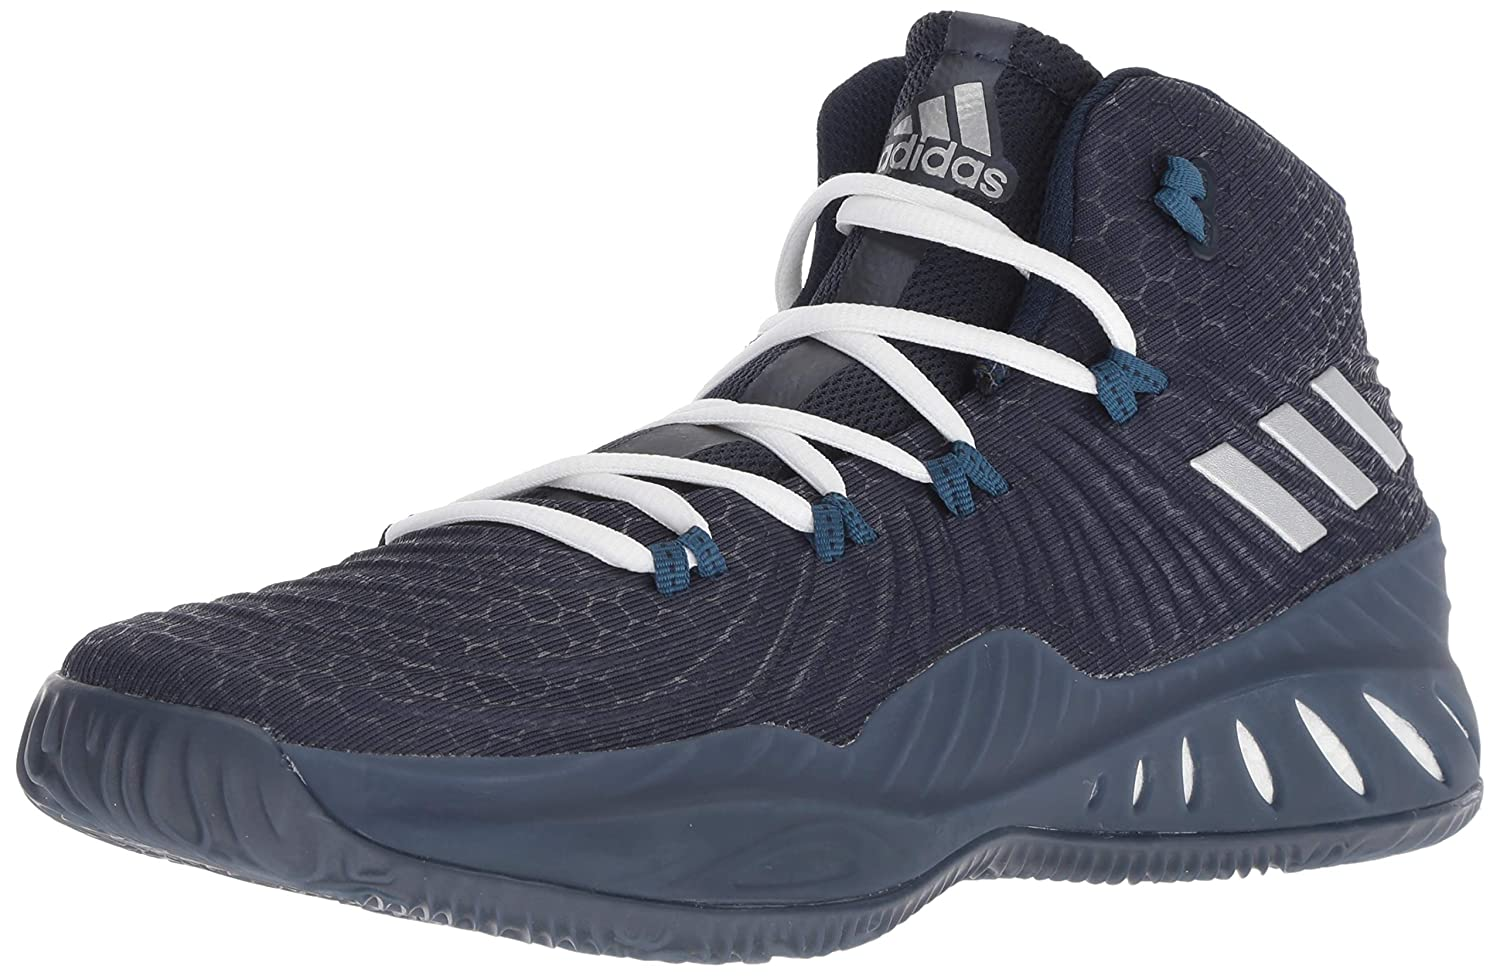 Conavy Silvmt Conavy adidas Crazy Explosivo NVY SIL NVY (by3773)